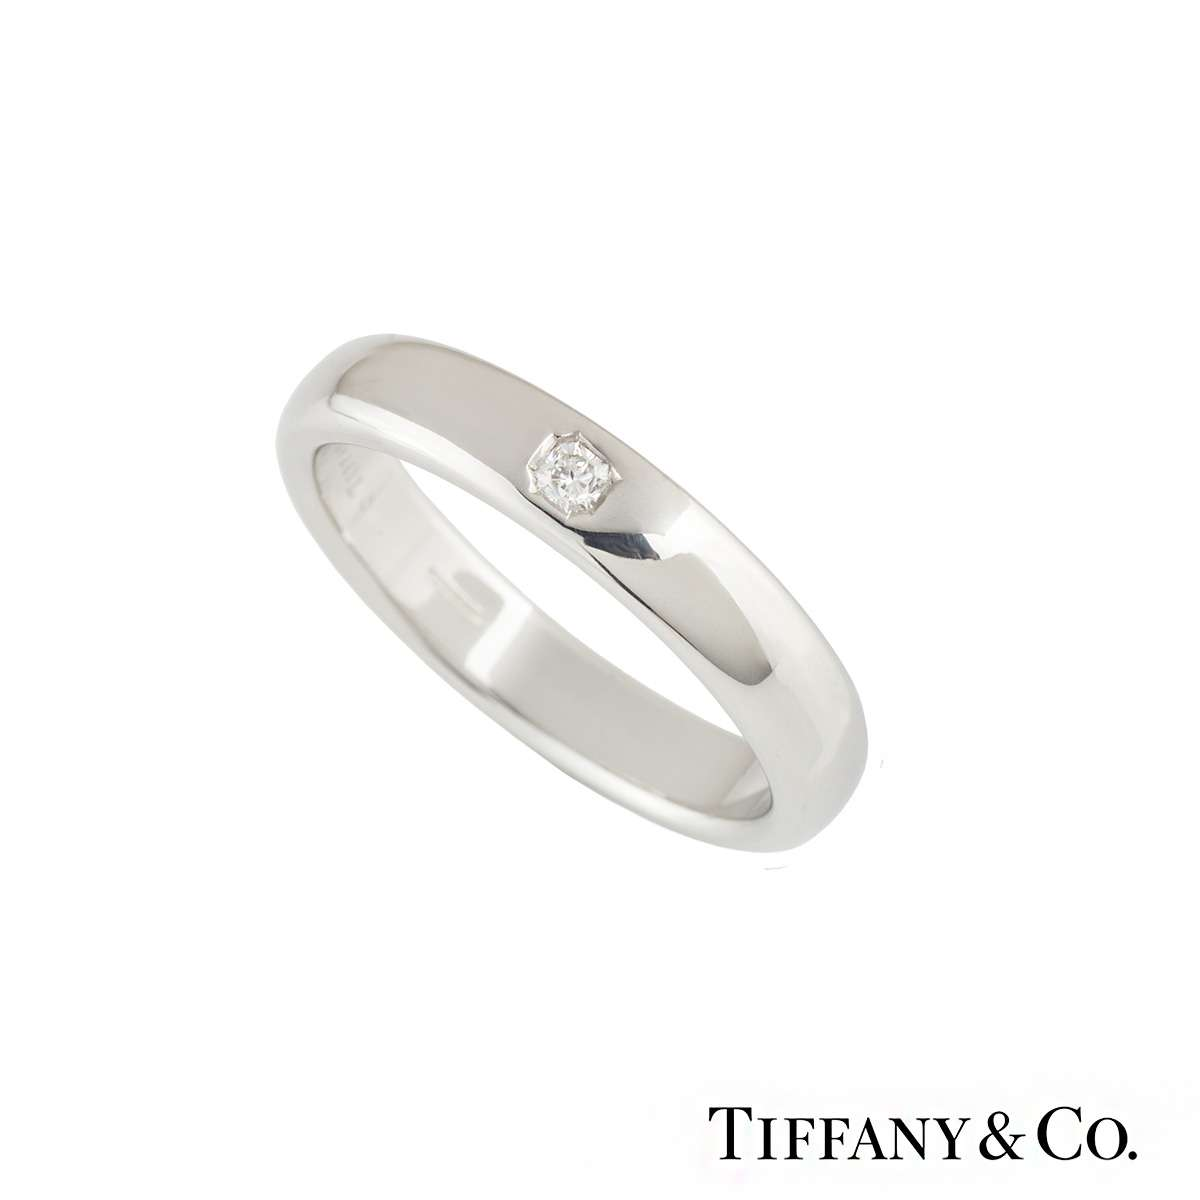 c04ae1ff2 Tiffany & Co. Lucida Diamond Wedding Band in Platinum